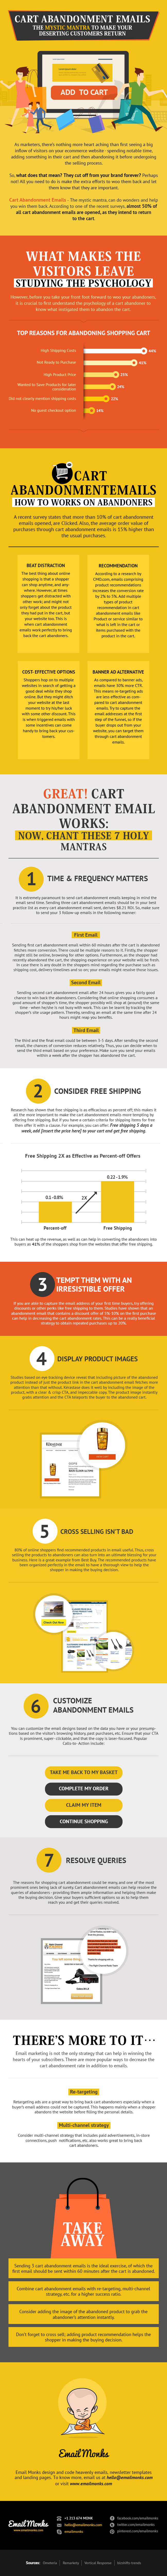 Cart Abandonment Emails Infographic (1)